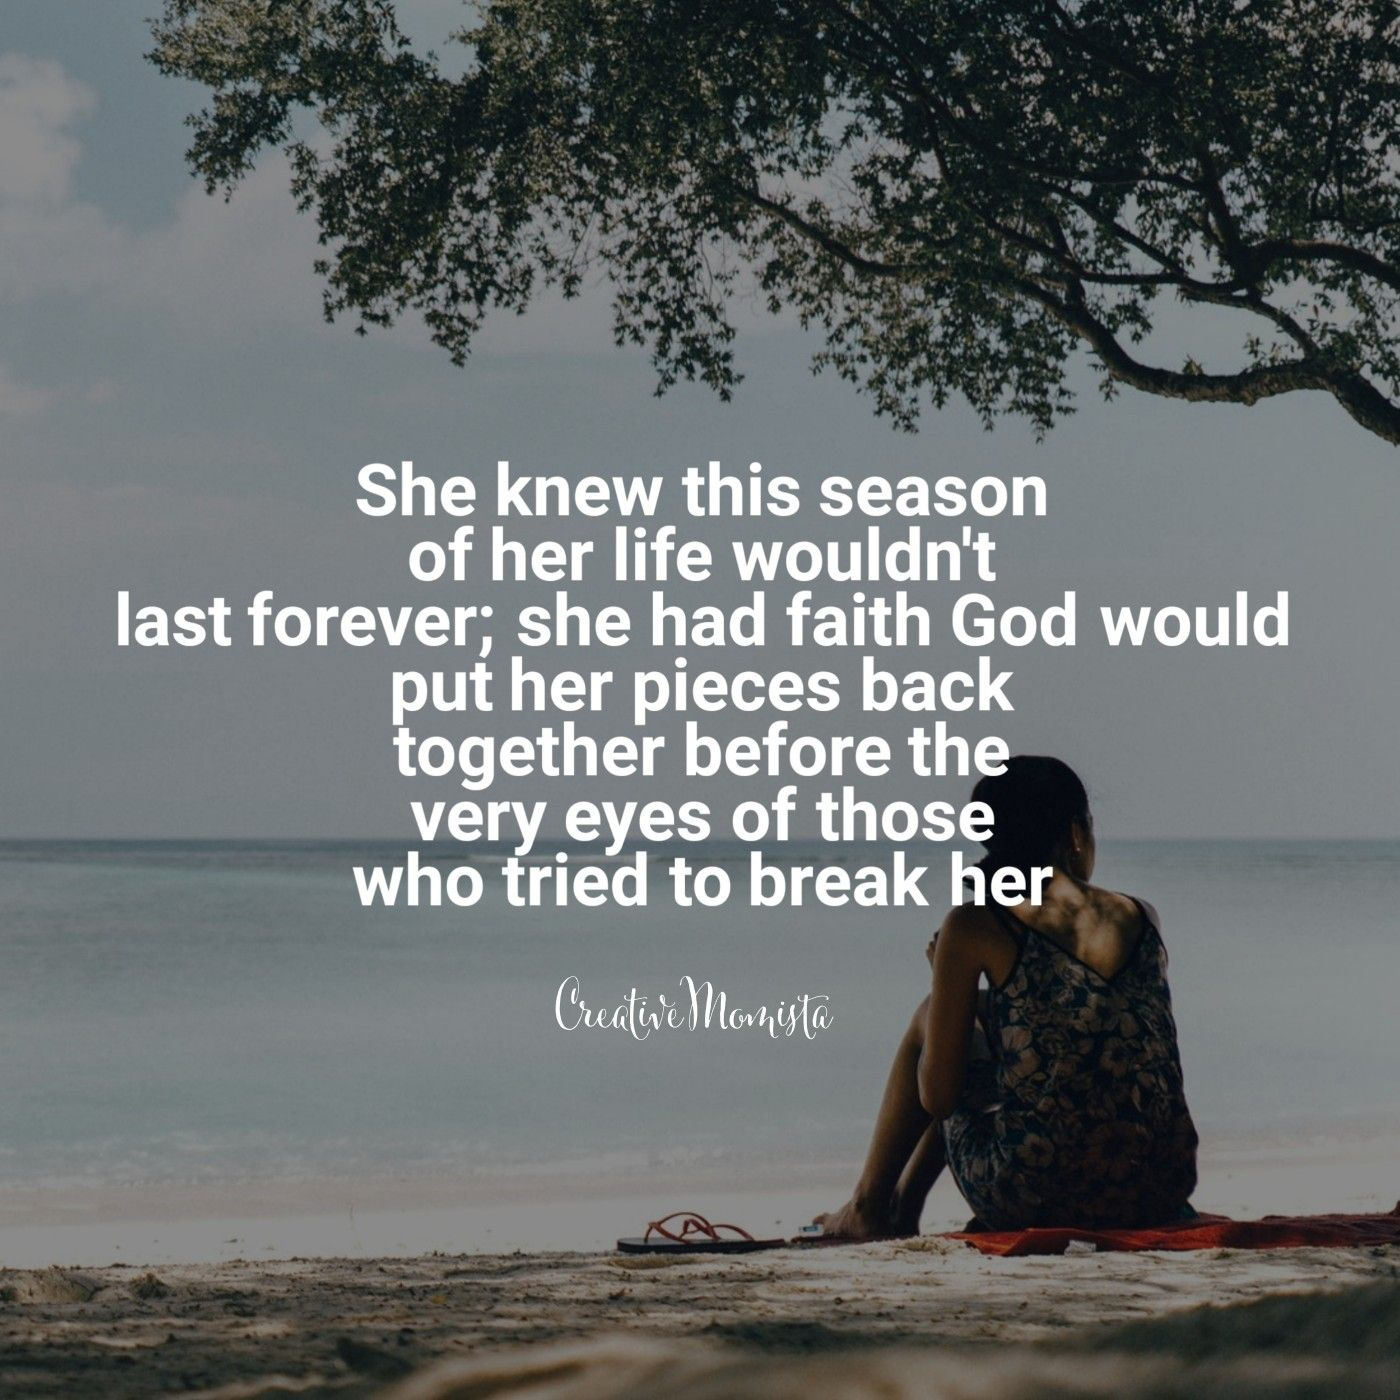 Woman Of Faith Quotes: Quotes For Strong Women Of Faith, She Knew This Season Of